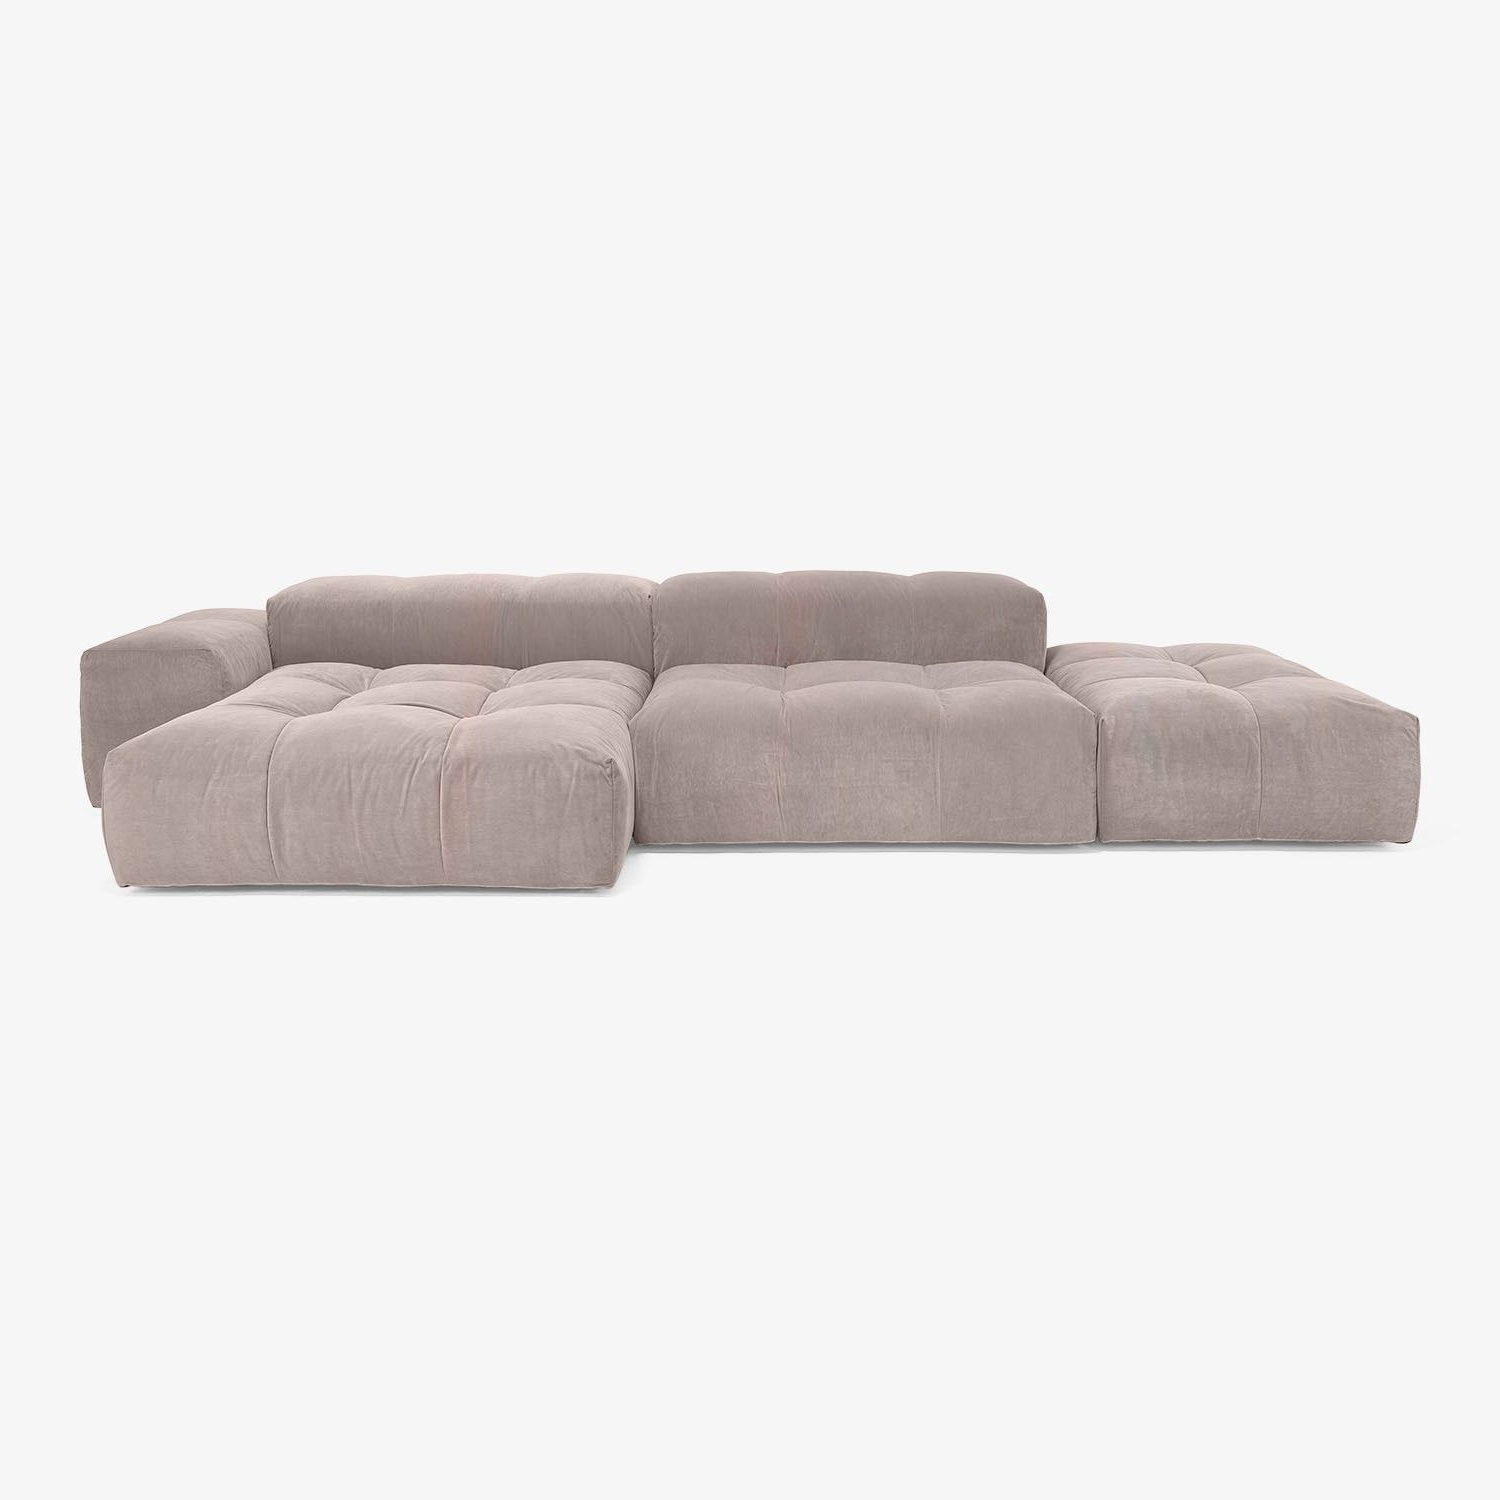 Modern Sectional Sofas For Apartments At Abc Home & Carpet With Most Up To Date Harper Down 3 Piece Sectionals (View 9 of 20)